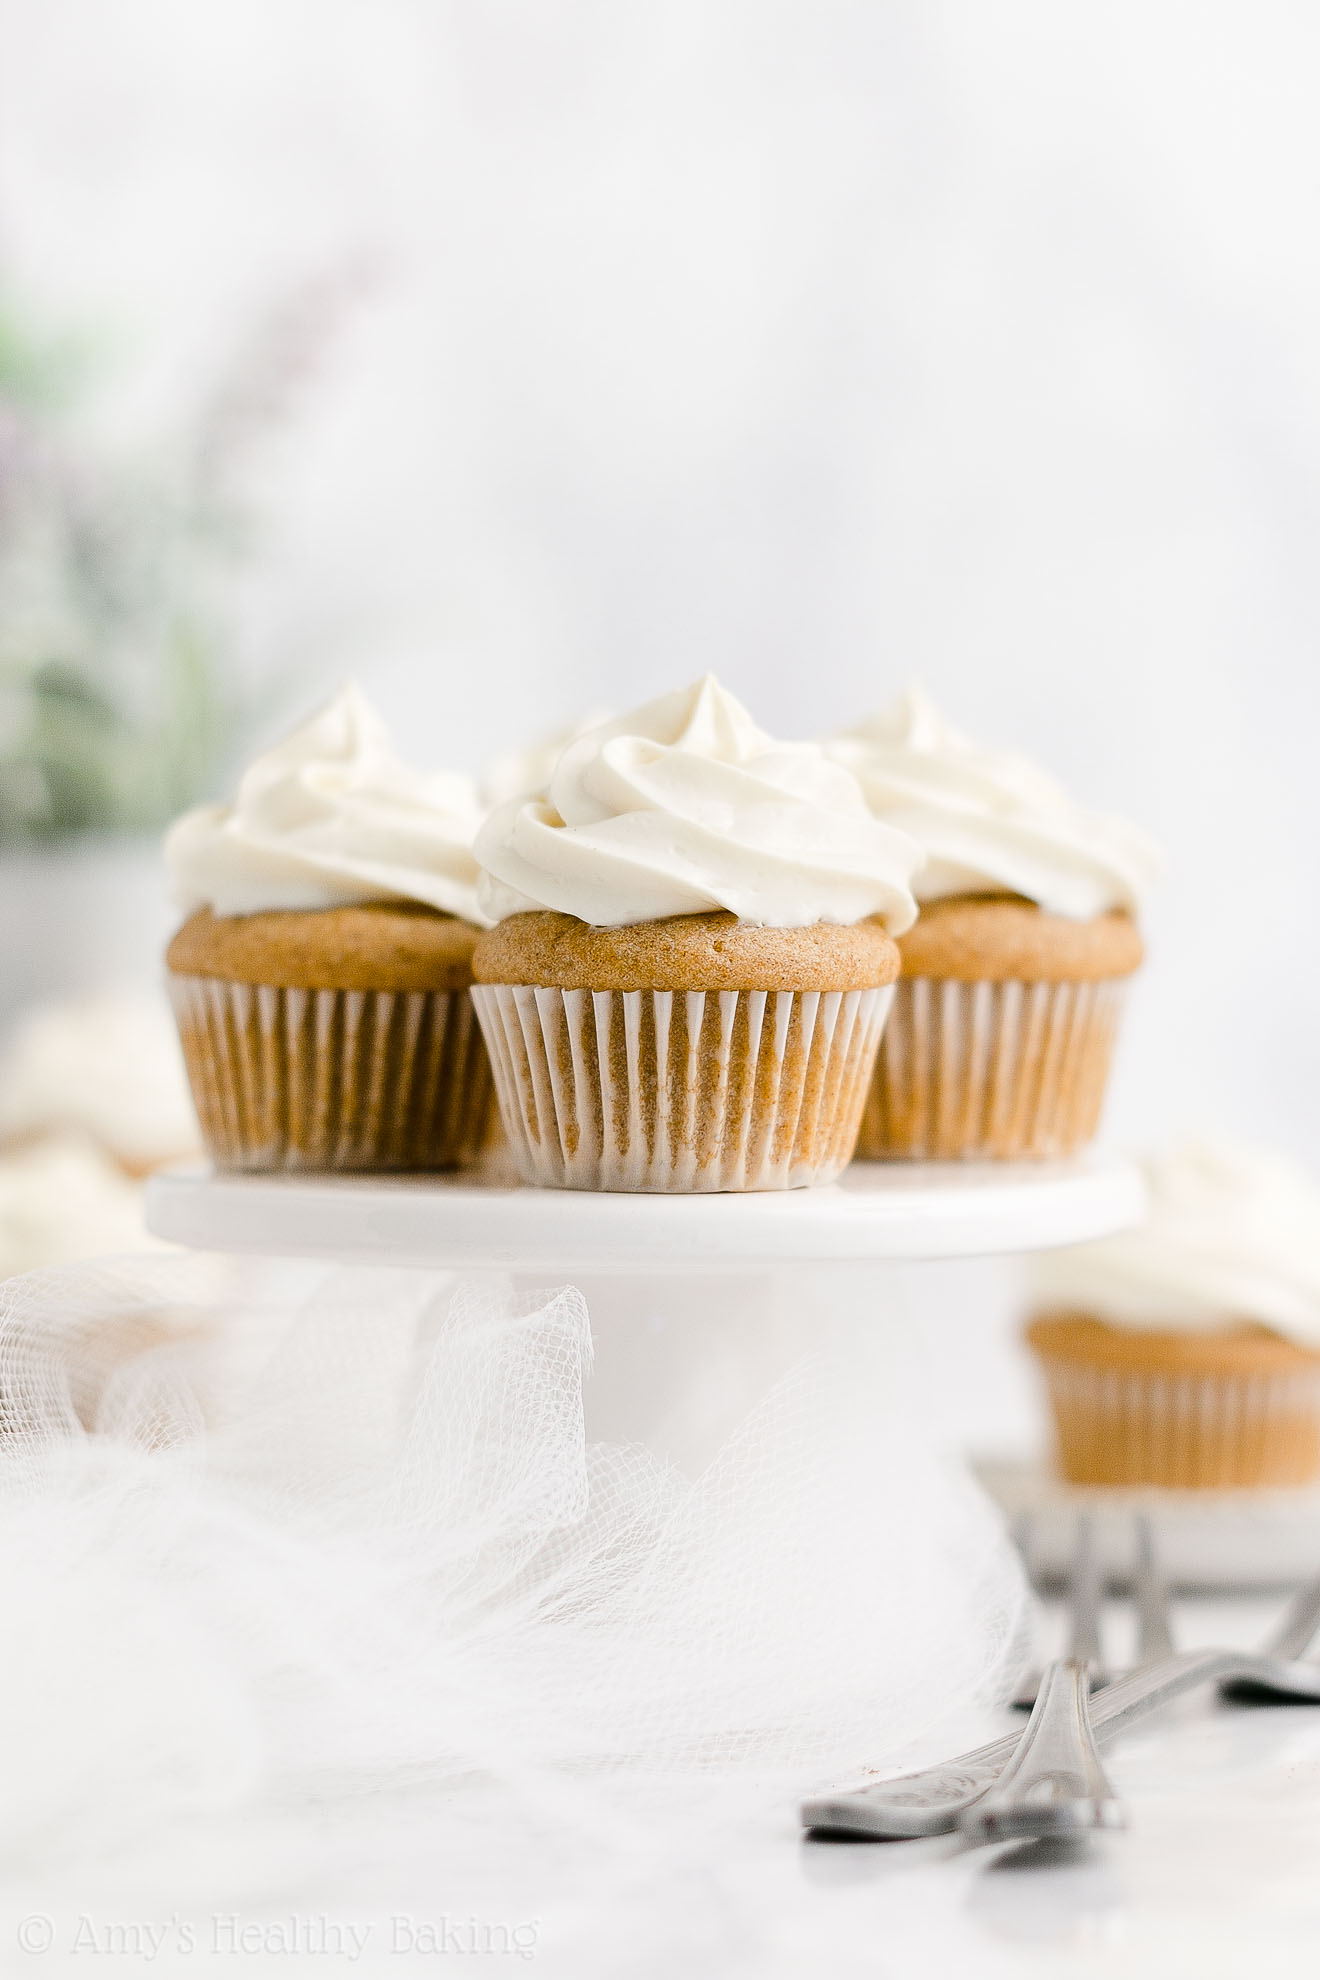 Healthy Clean Eating Whole Wheat Low Calorie Mini Snickerdoodle Cupcakes